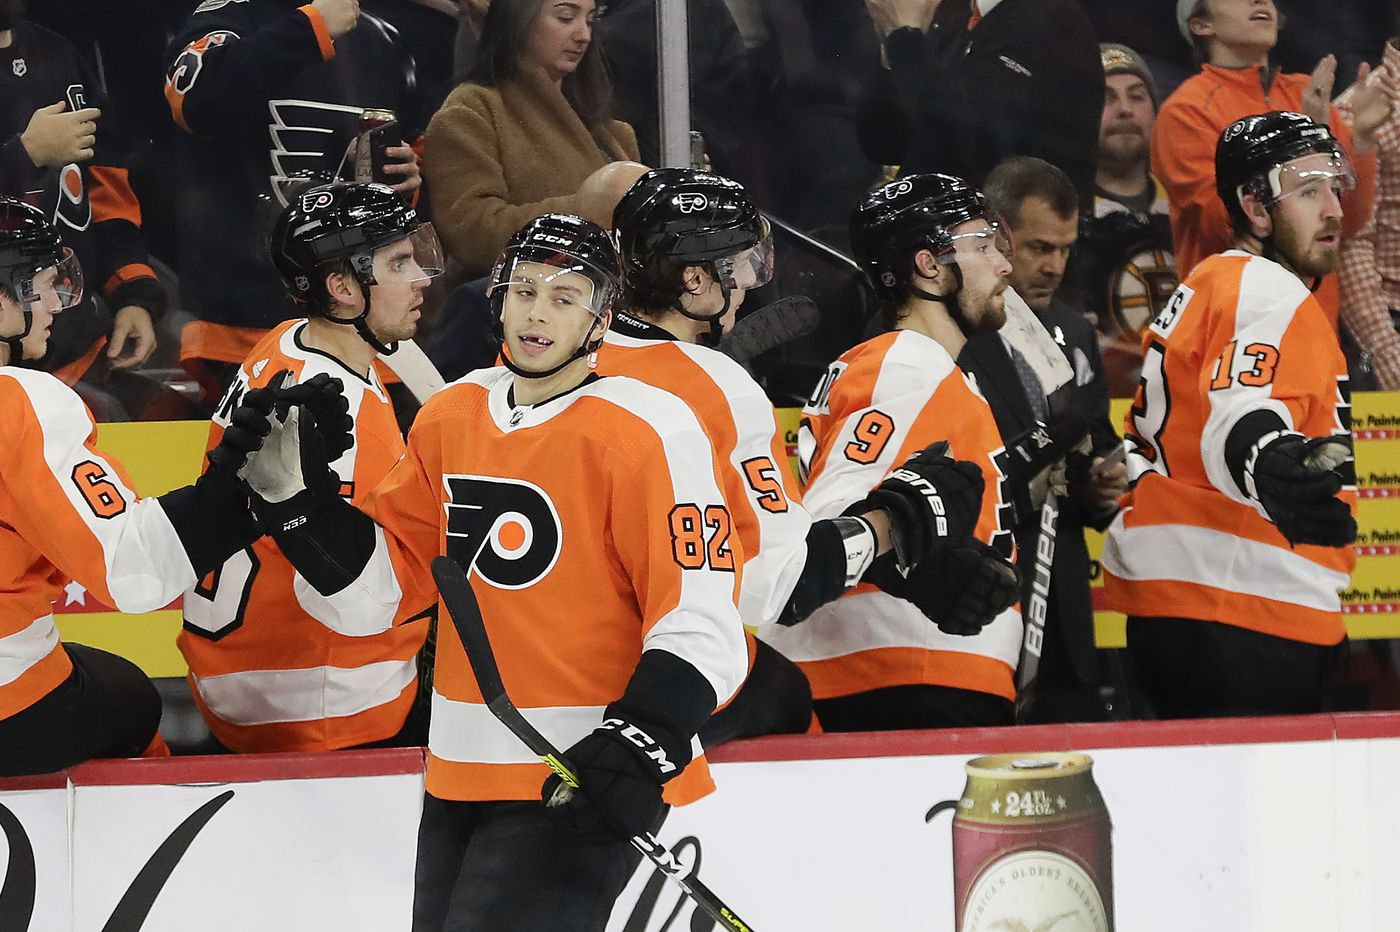 Flyers 6, Bruins 5, in a gritty, crazy shootout game; and other quick observations | Marcus Hayes